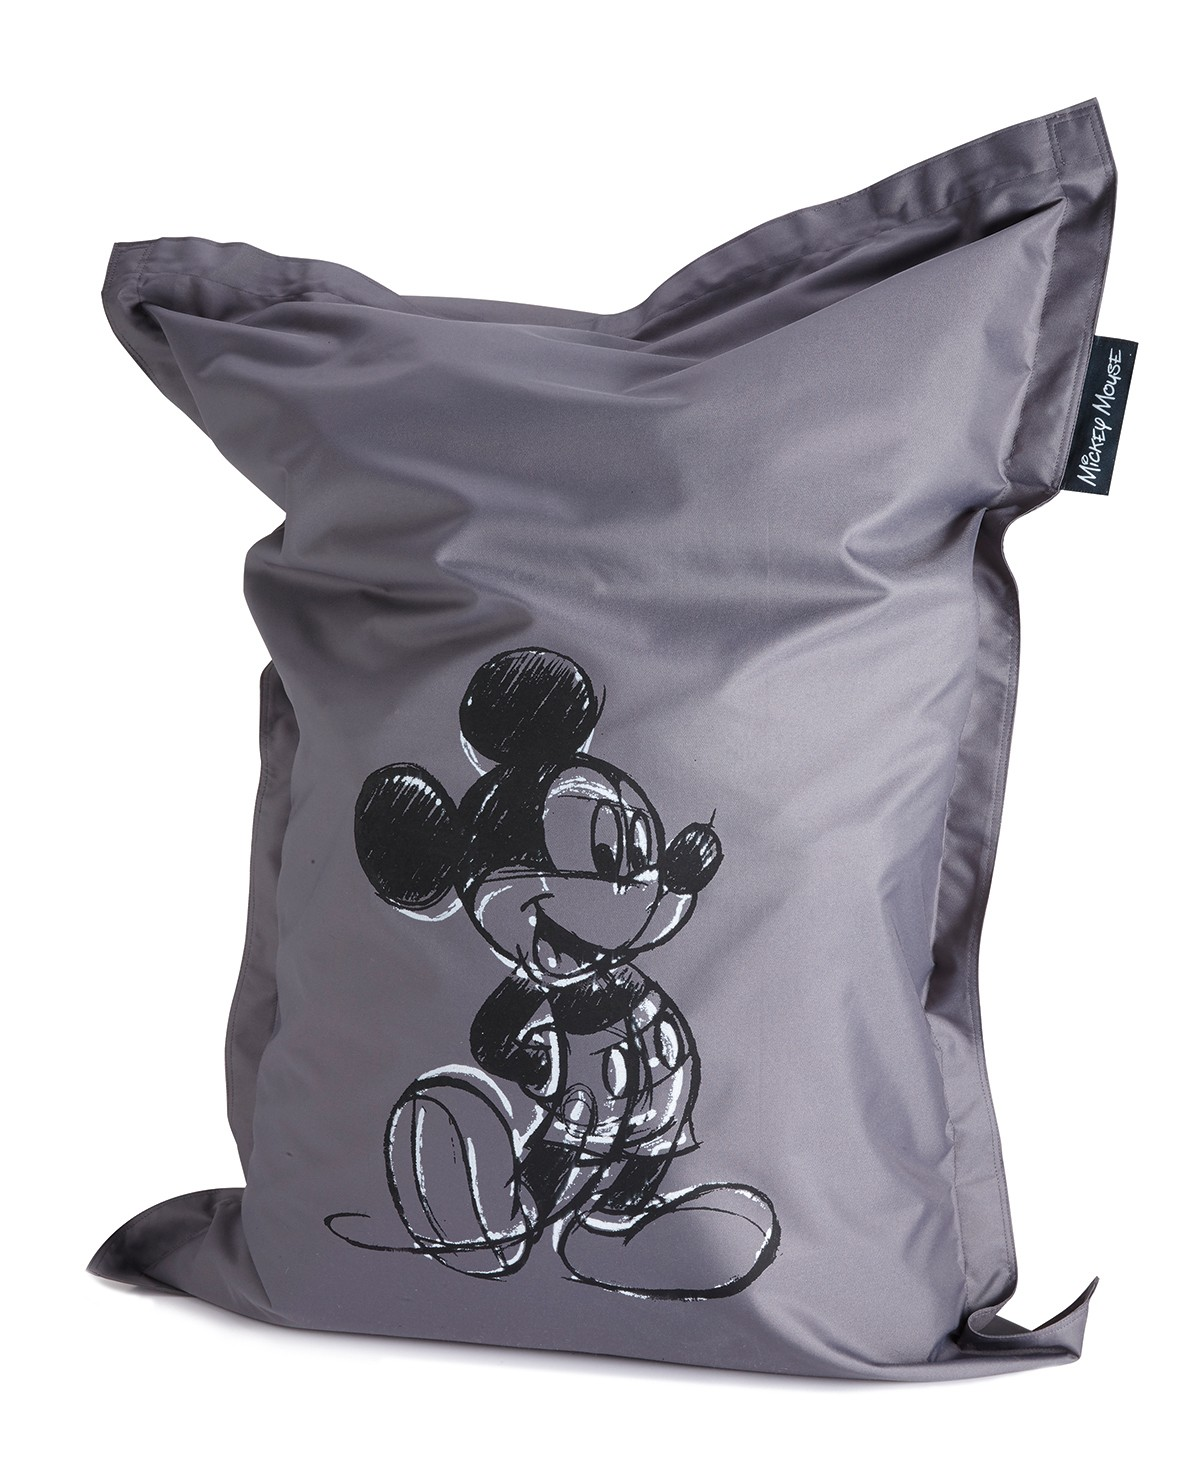 grand pouf si ge poire mickey mouse gris 100 x 135 cm. Black Bedroom Furniture Sets. Home Design Ideas